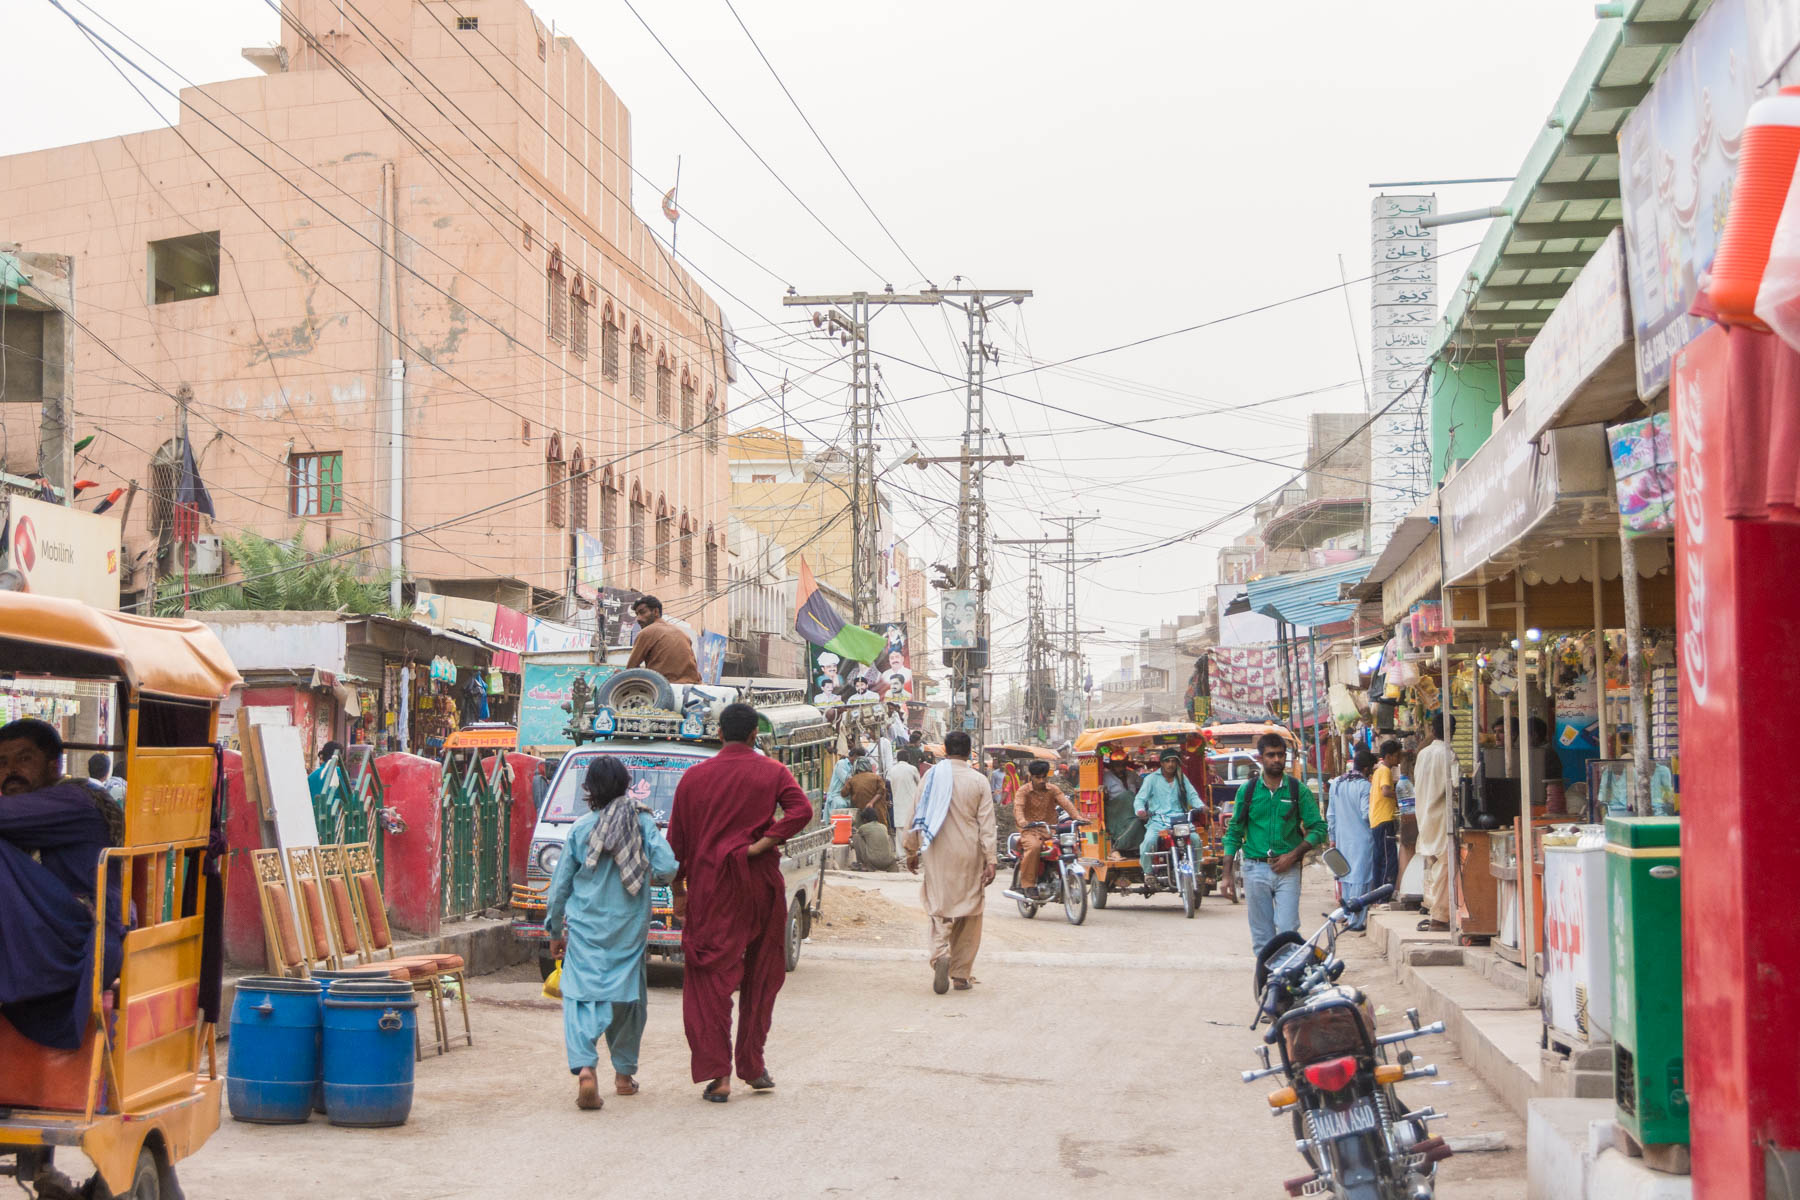 The streets of Sehwan Sharif, home to the famous Lal Shahbaz Qalandar shrine.